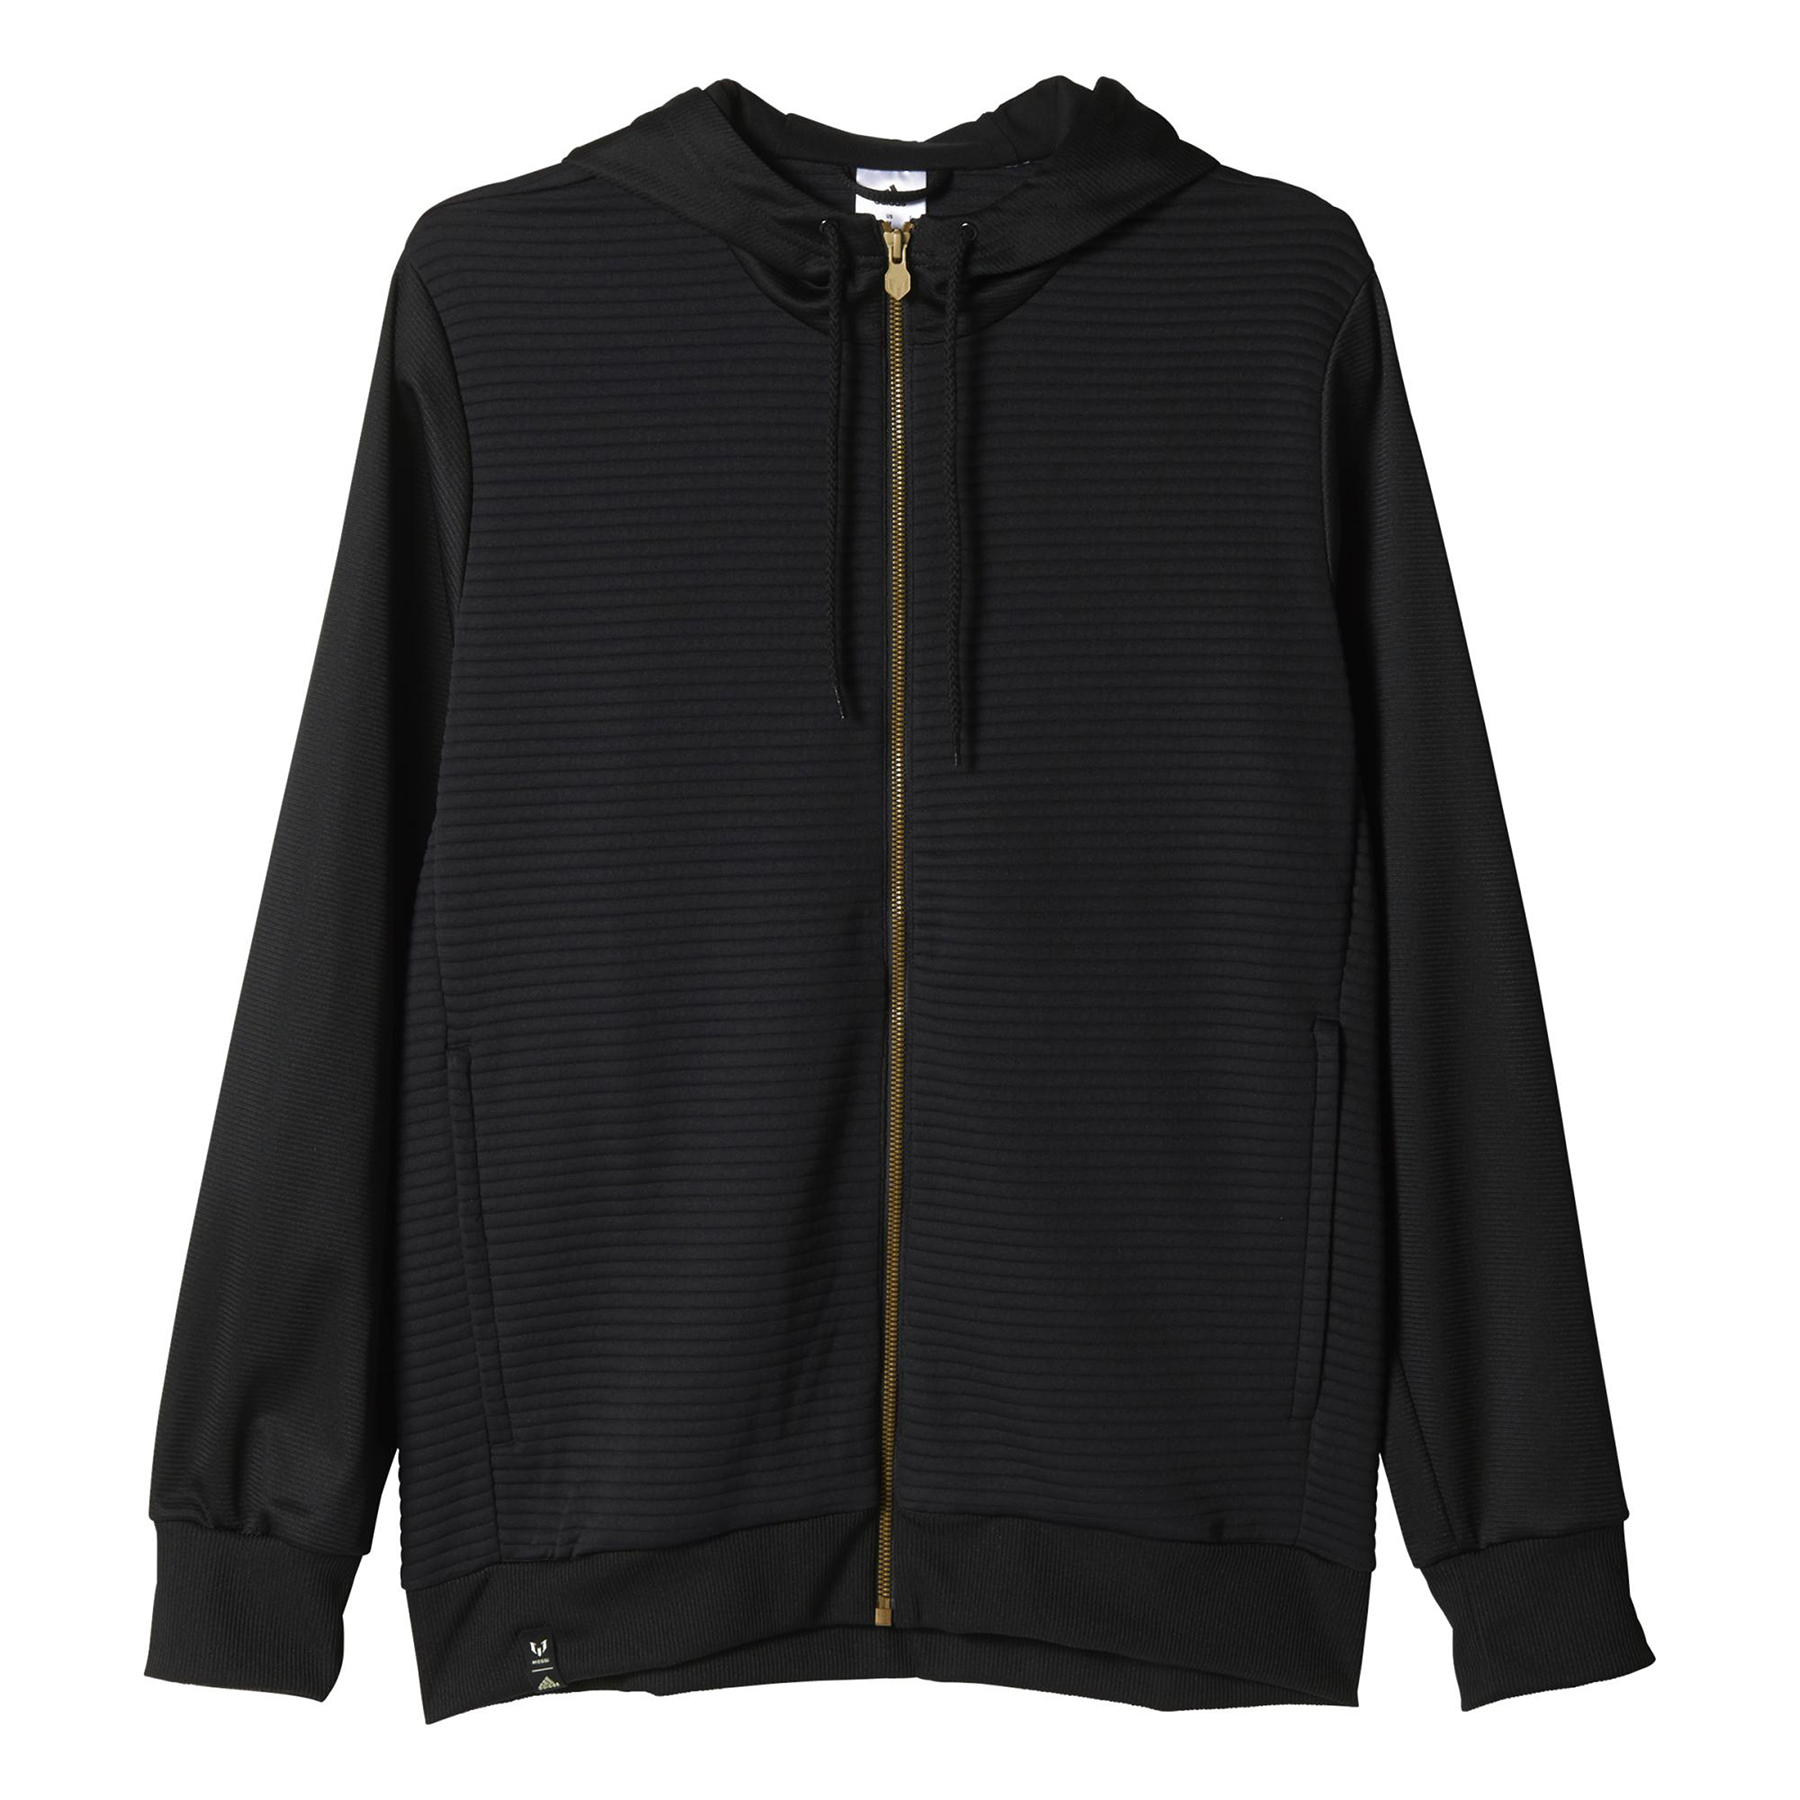 adidas Messi Hoody Jacket Black